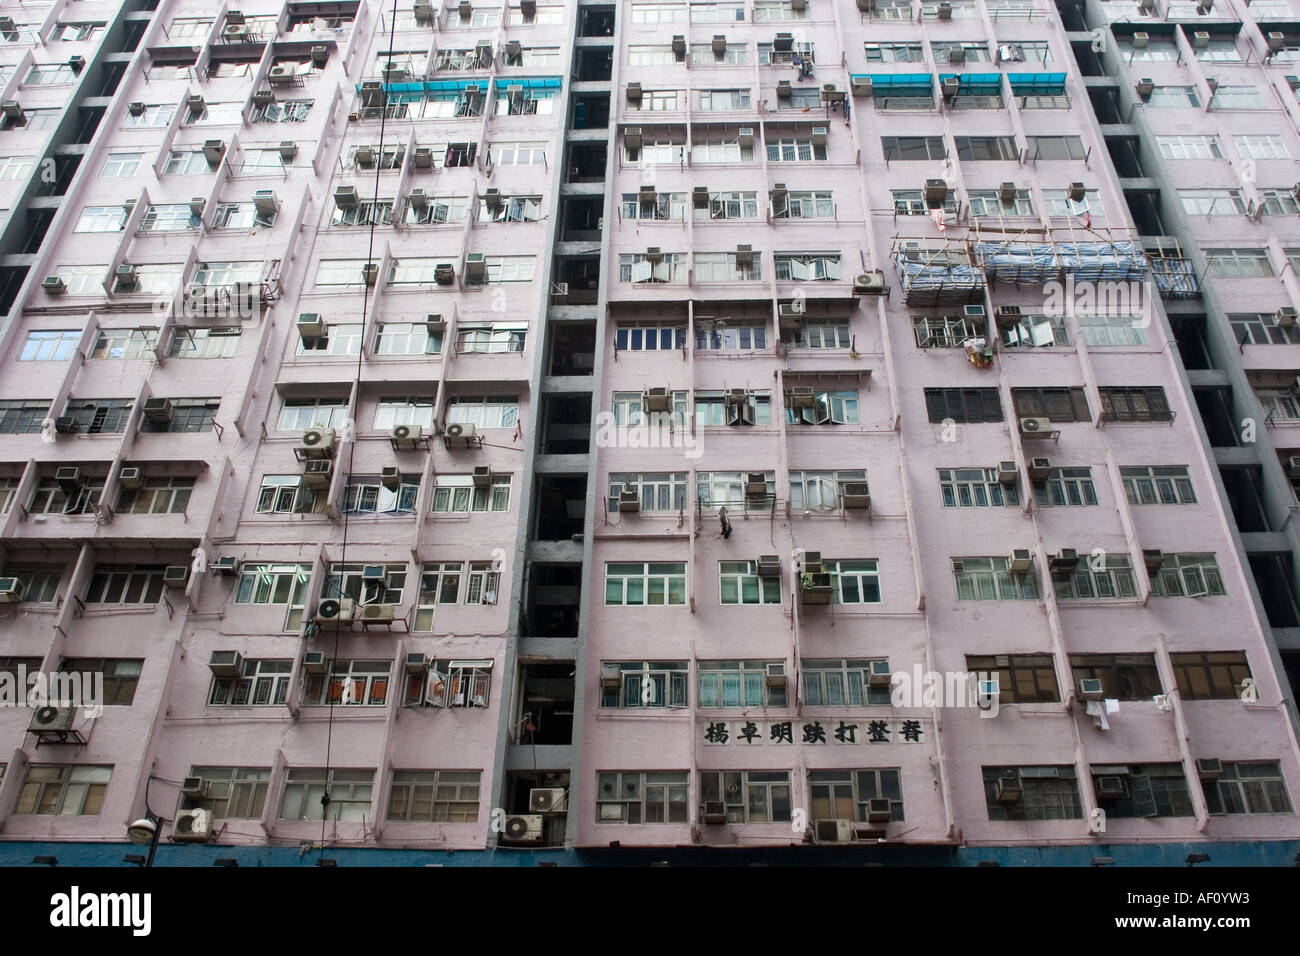 busy apartment building in wan chai area of hong kong exteriors are